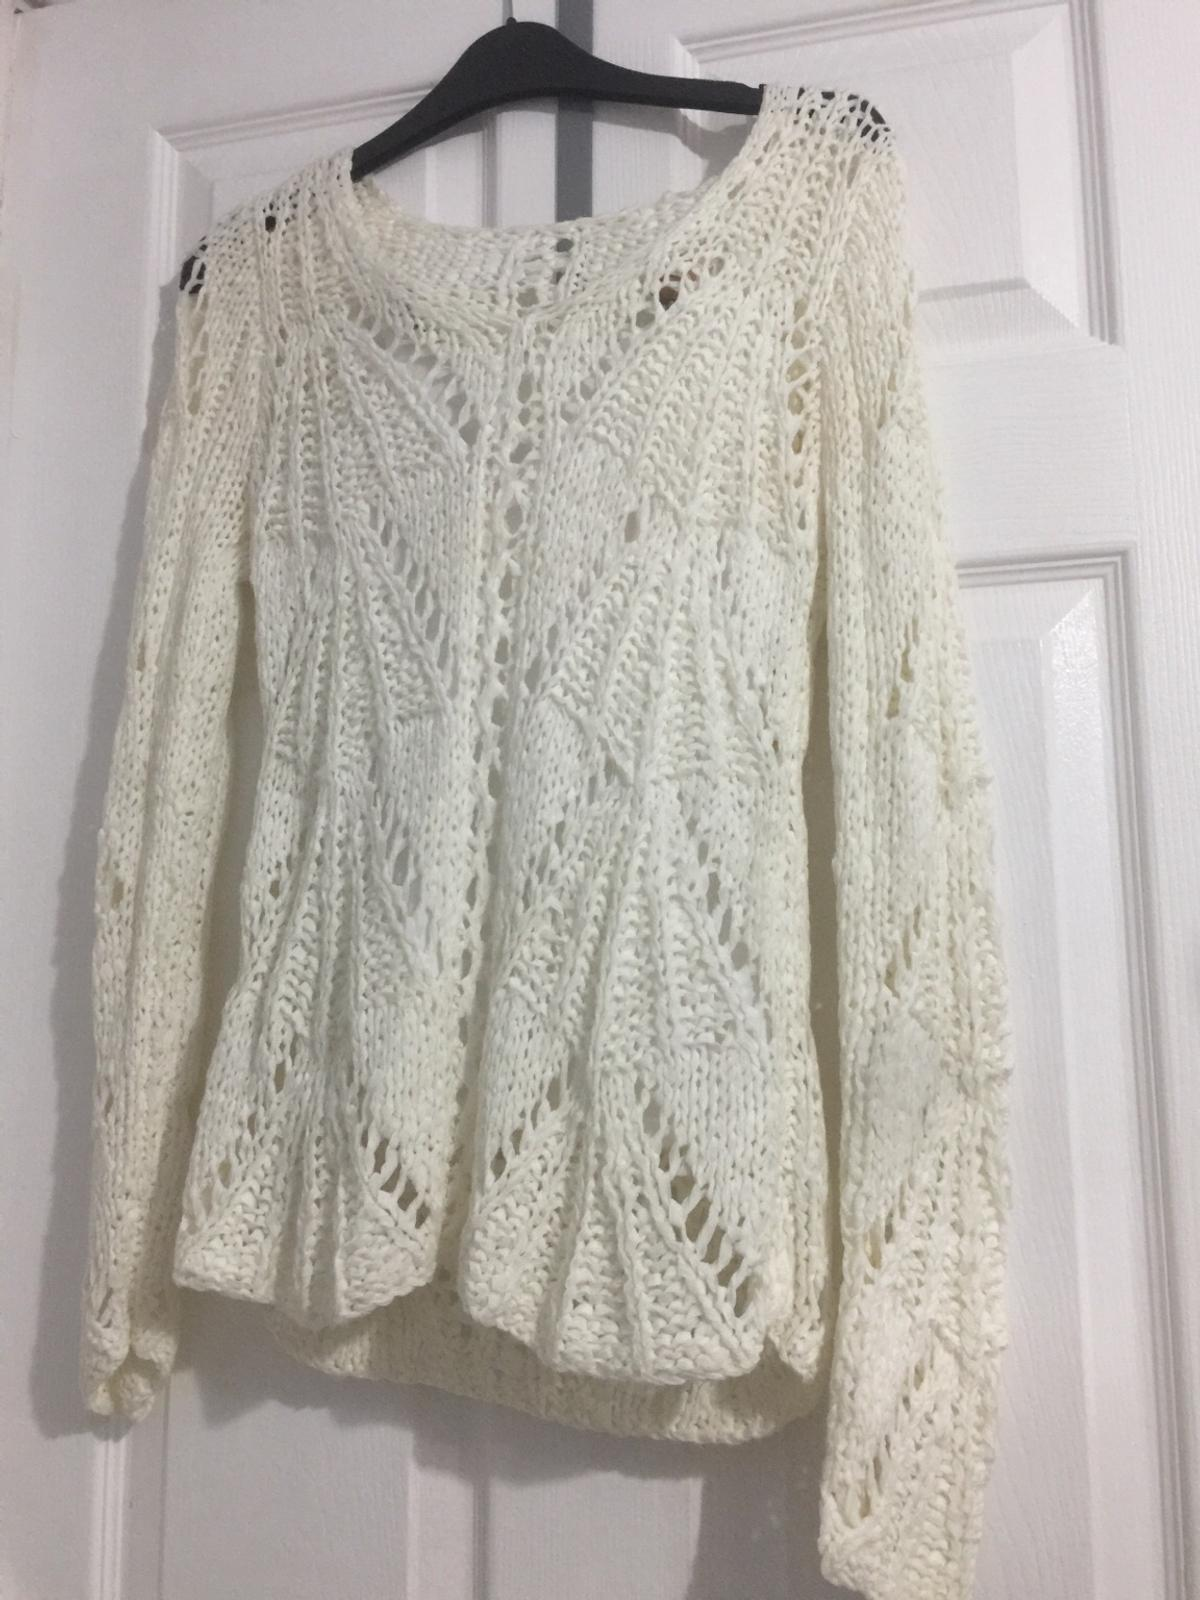 Lovely top Never worn From pet and smoke free home